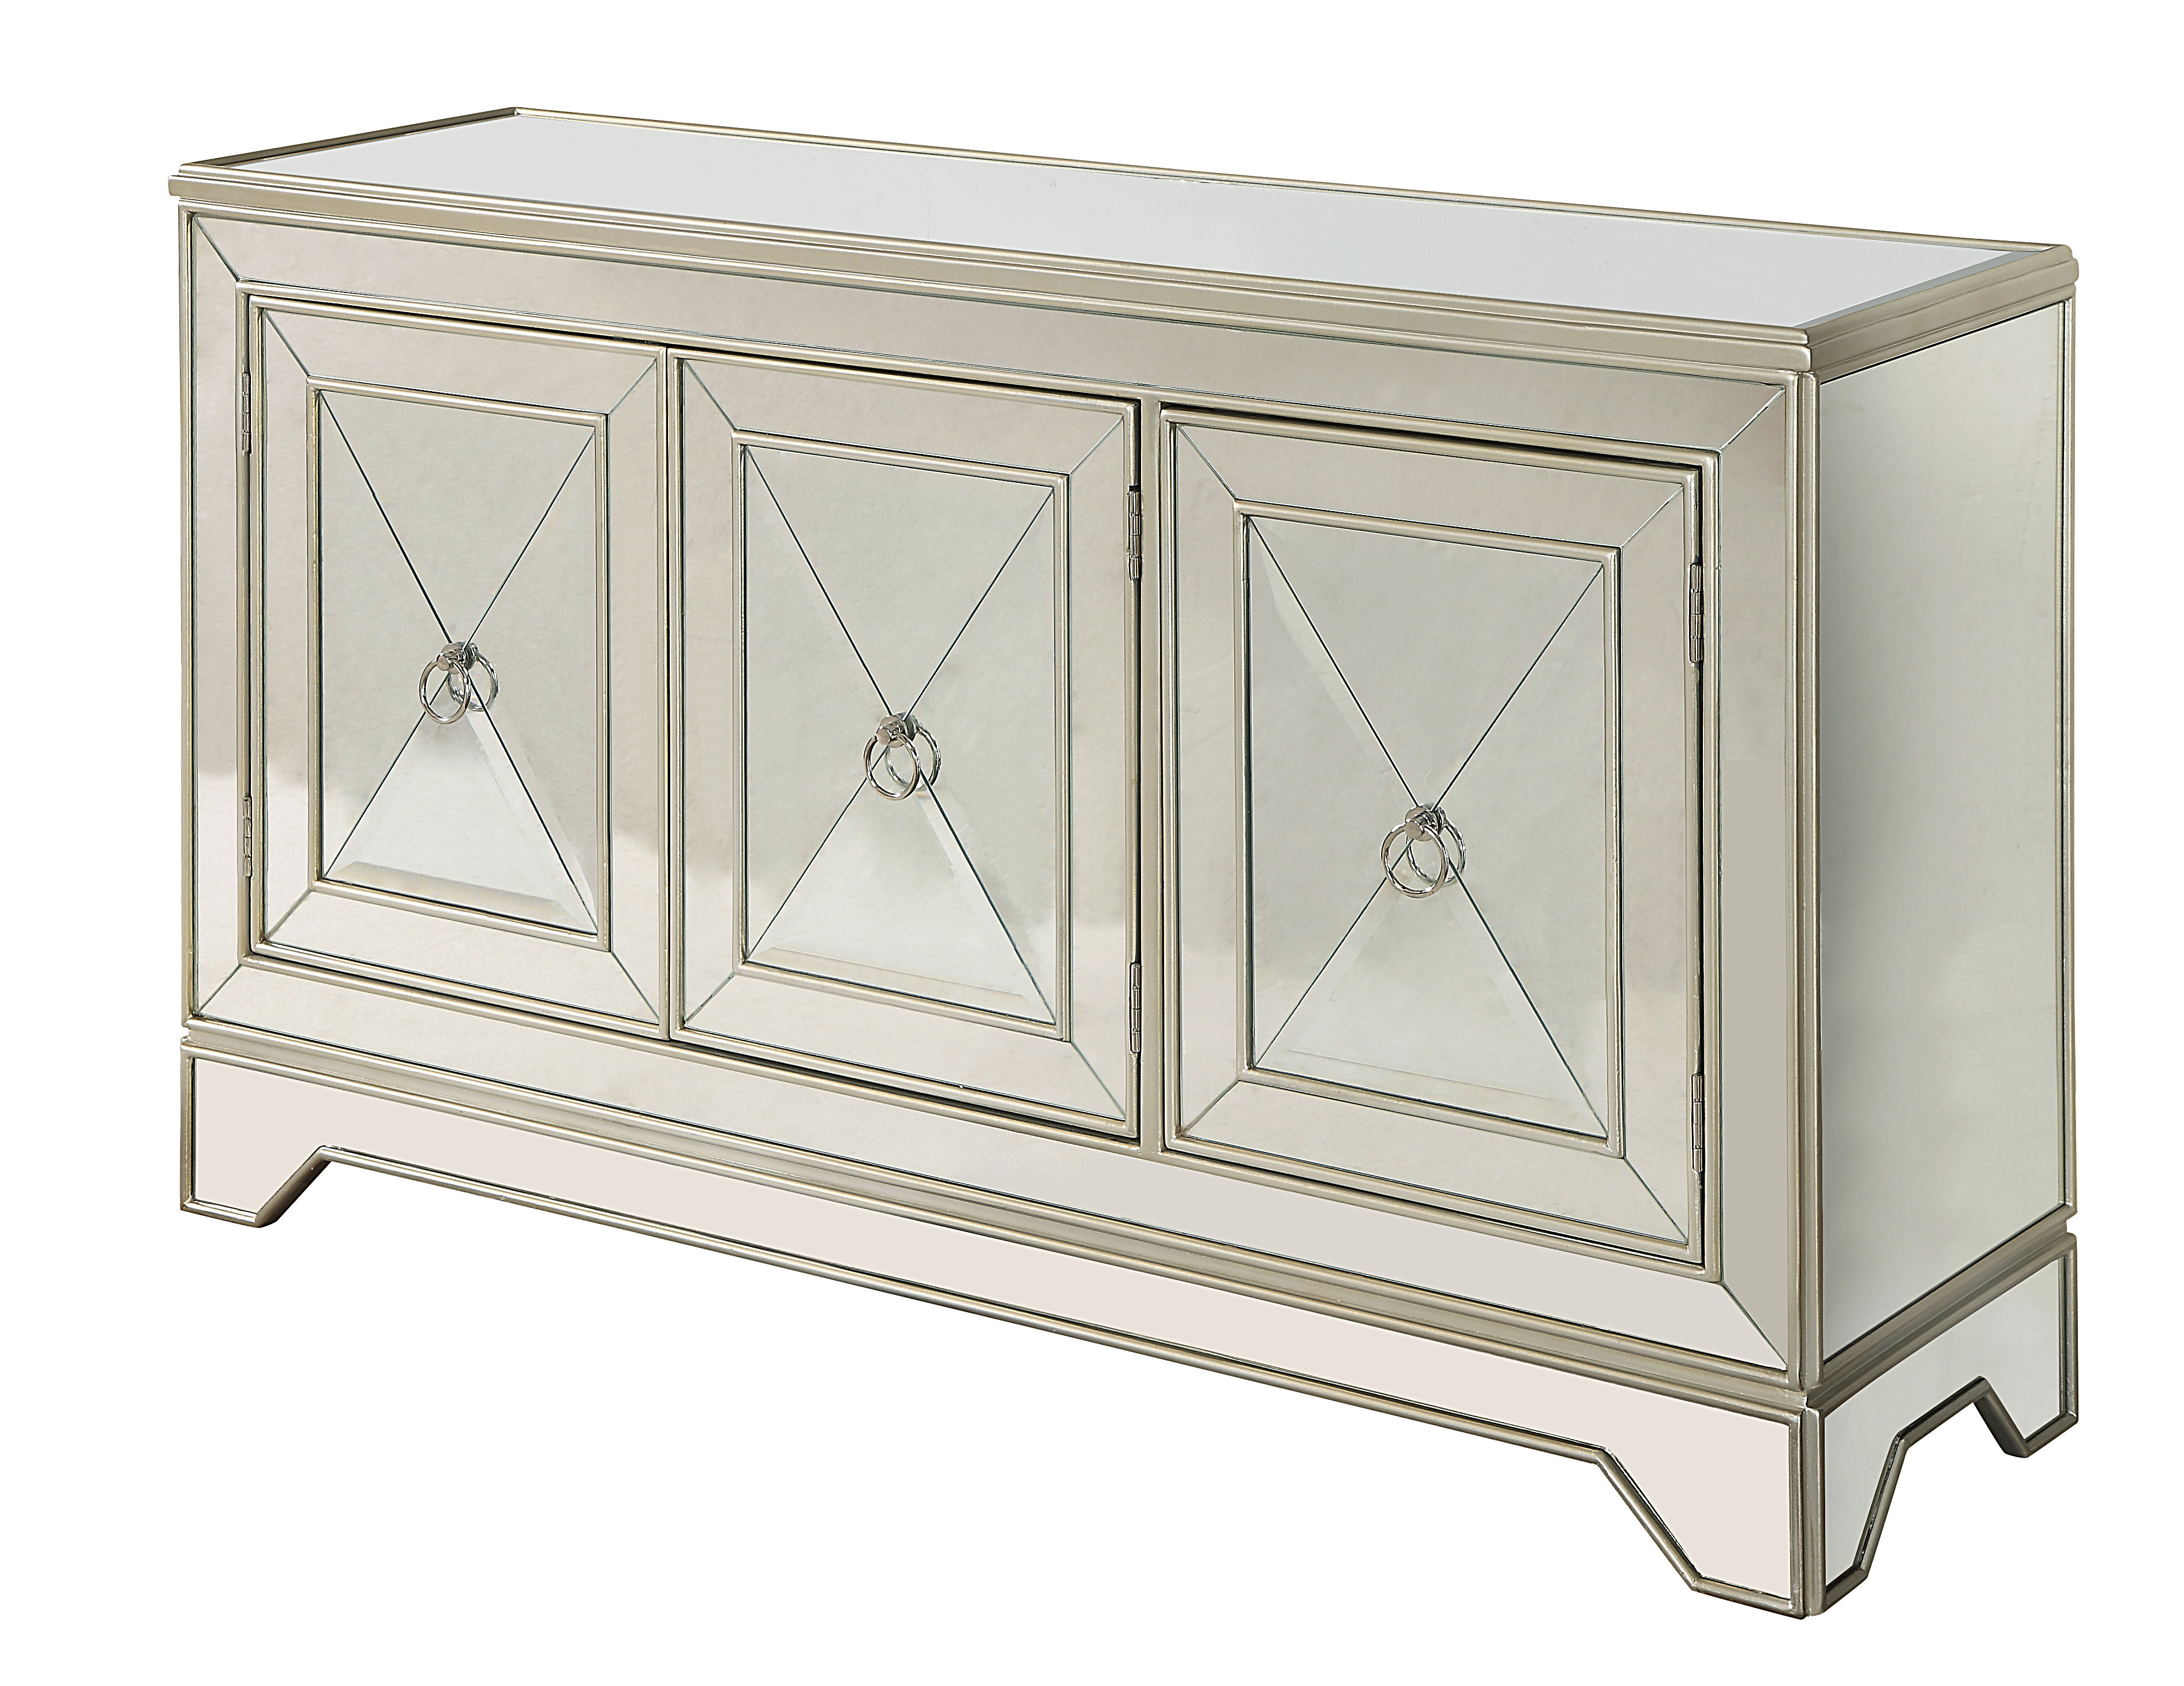 Keeney Sideboard Regarding Most Current Kendall Sideboards (#5 of 20)